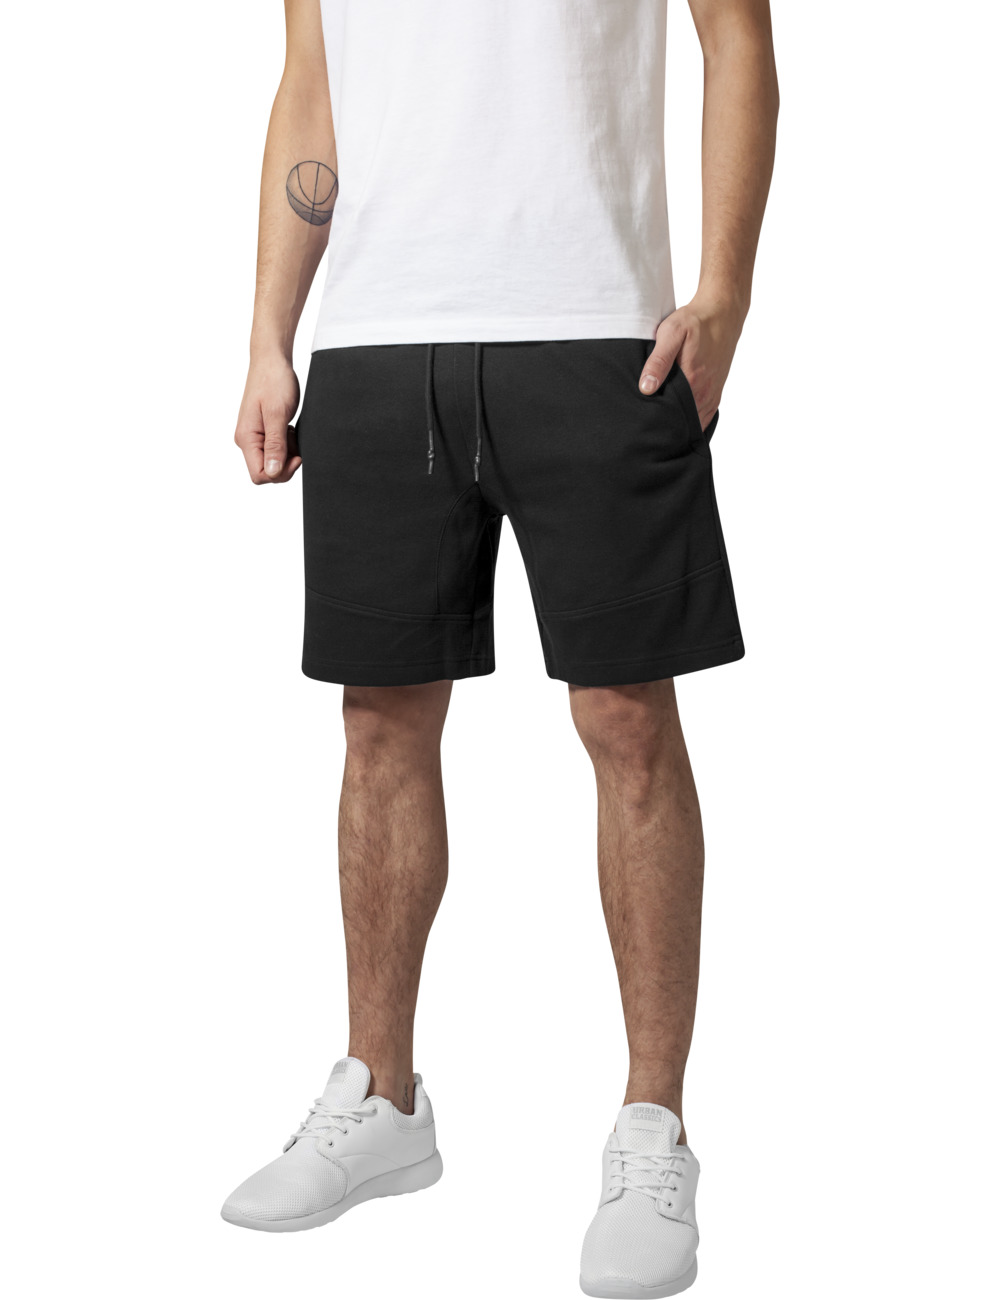 urban-classics-herren-interlock-sweatshorts